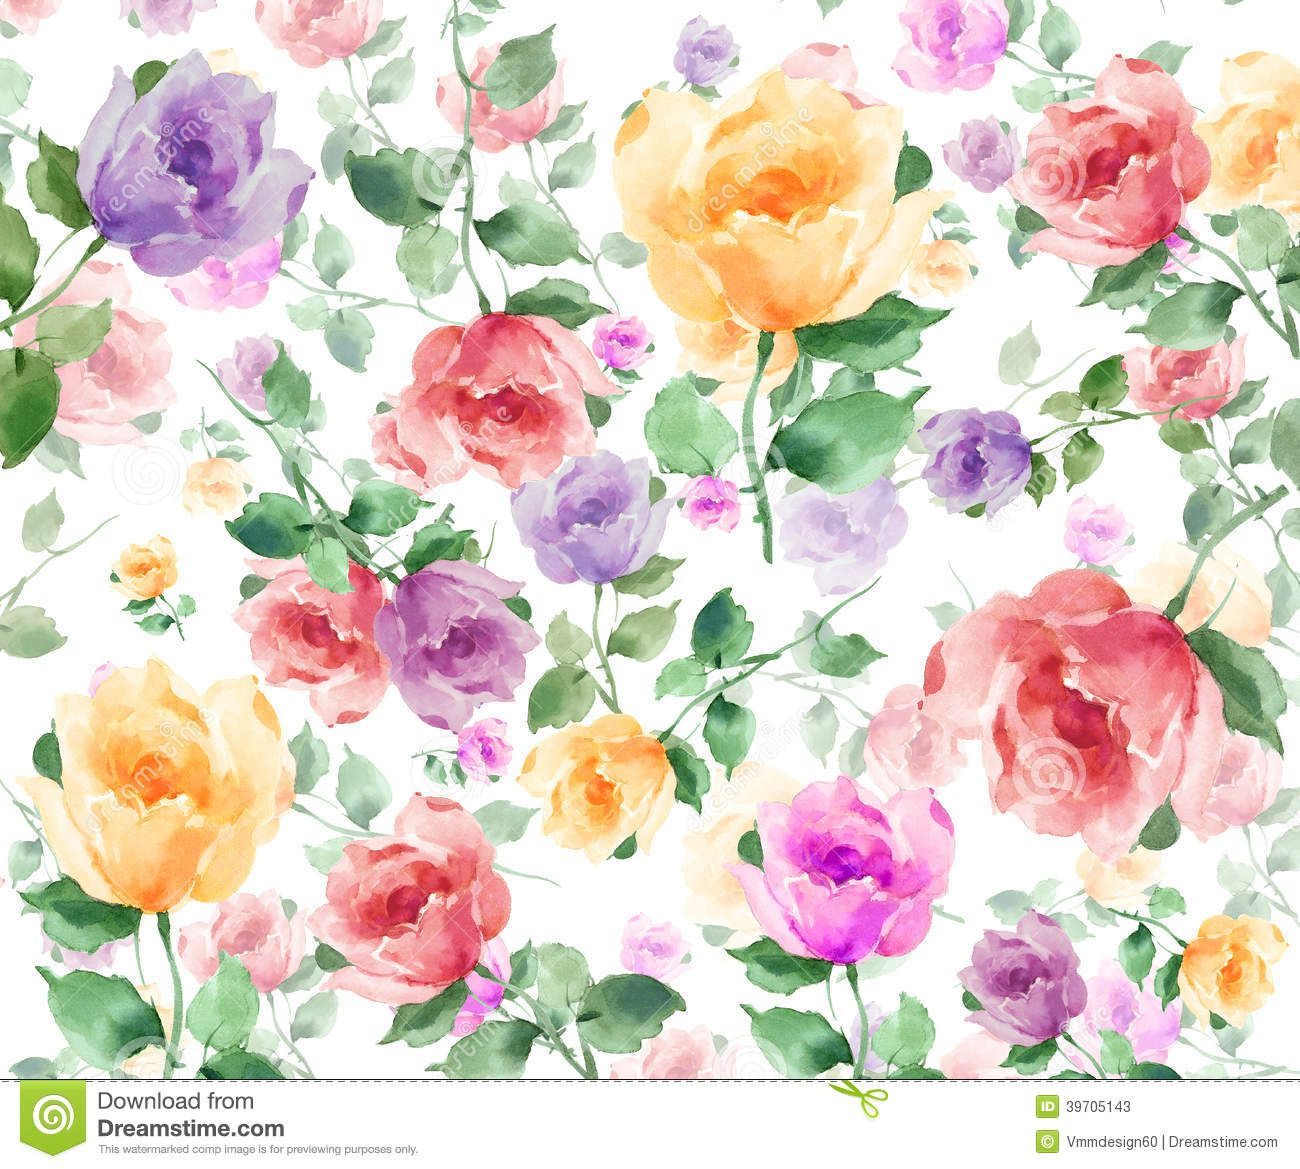 Watercolor Flowers Seamless Background Pattern Download From